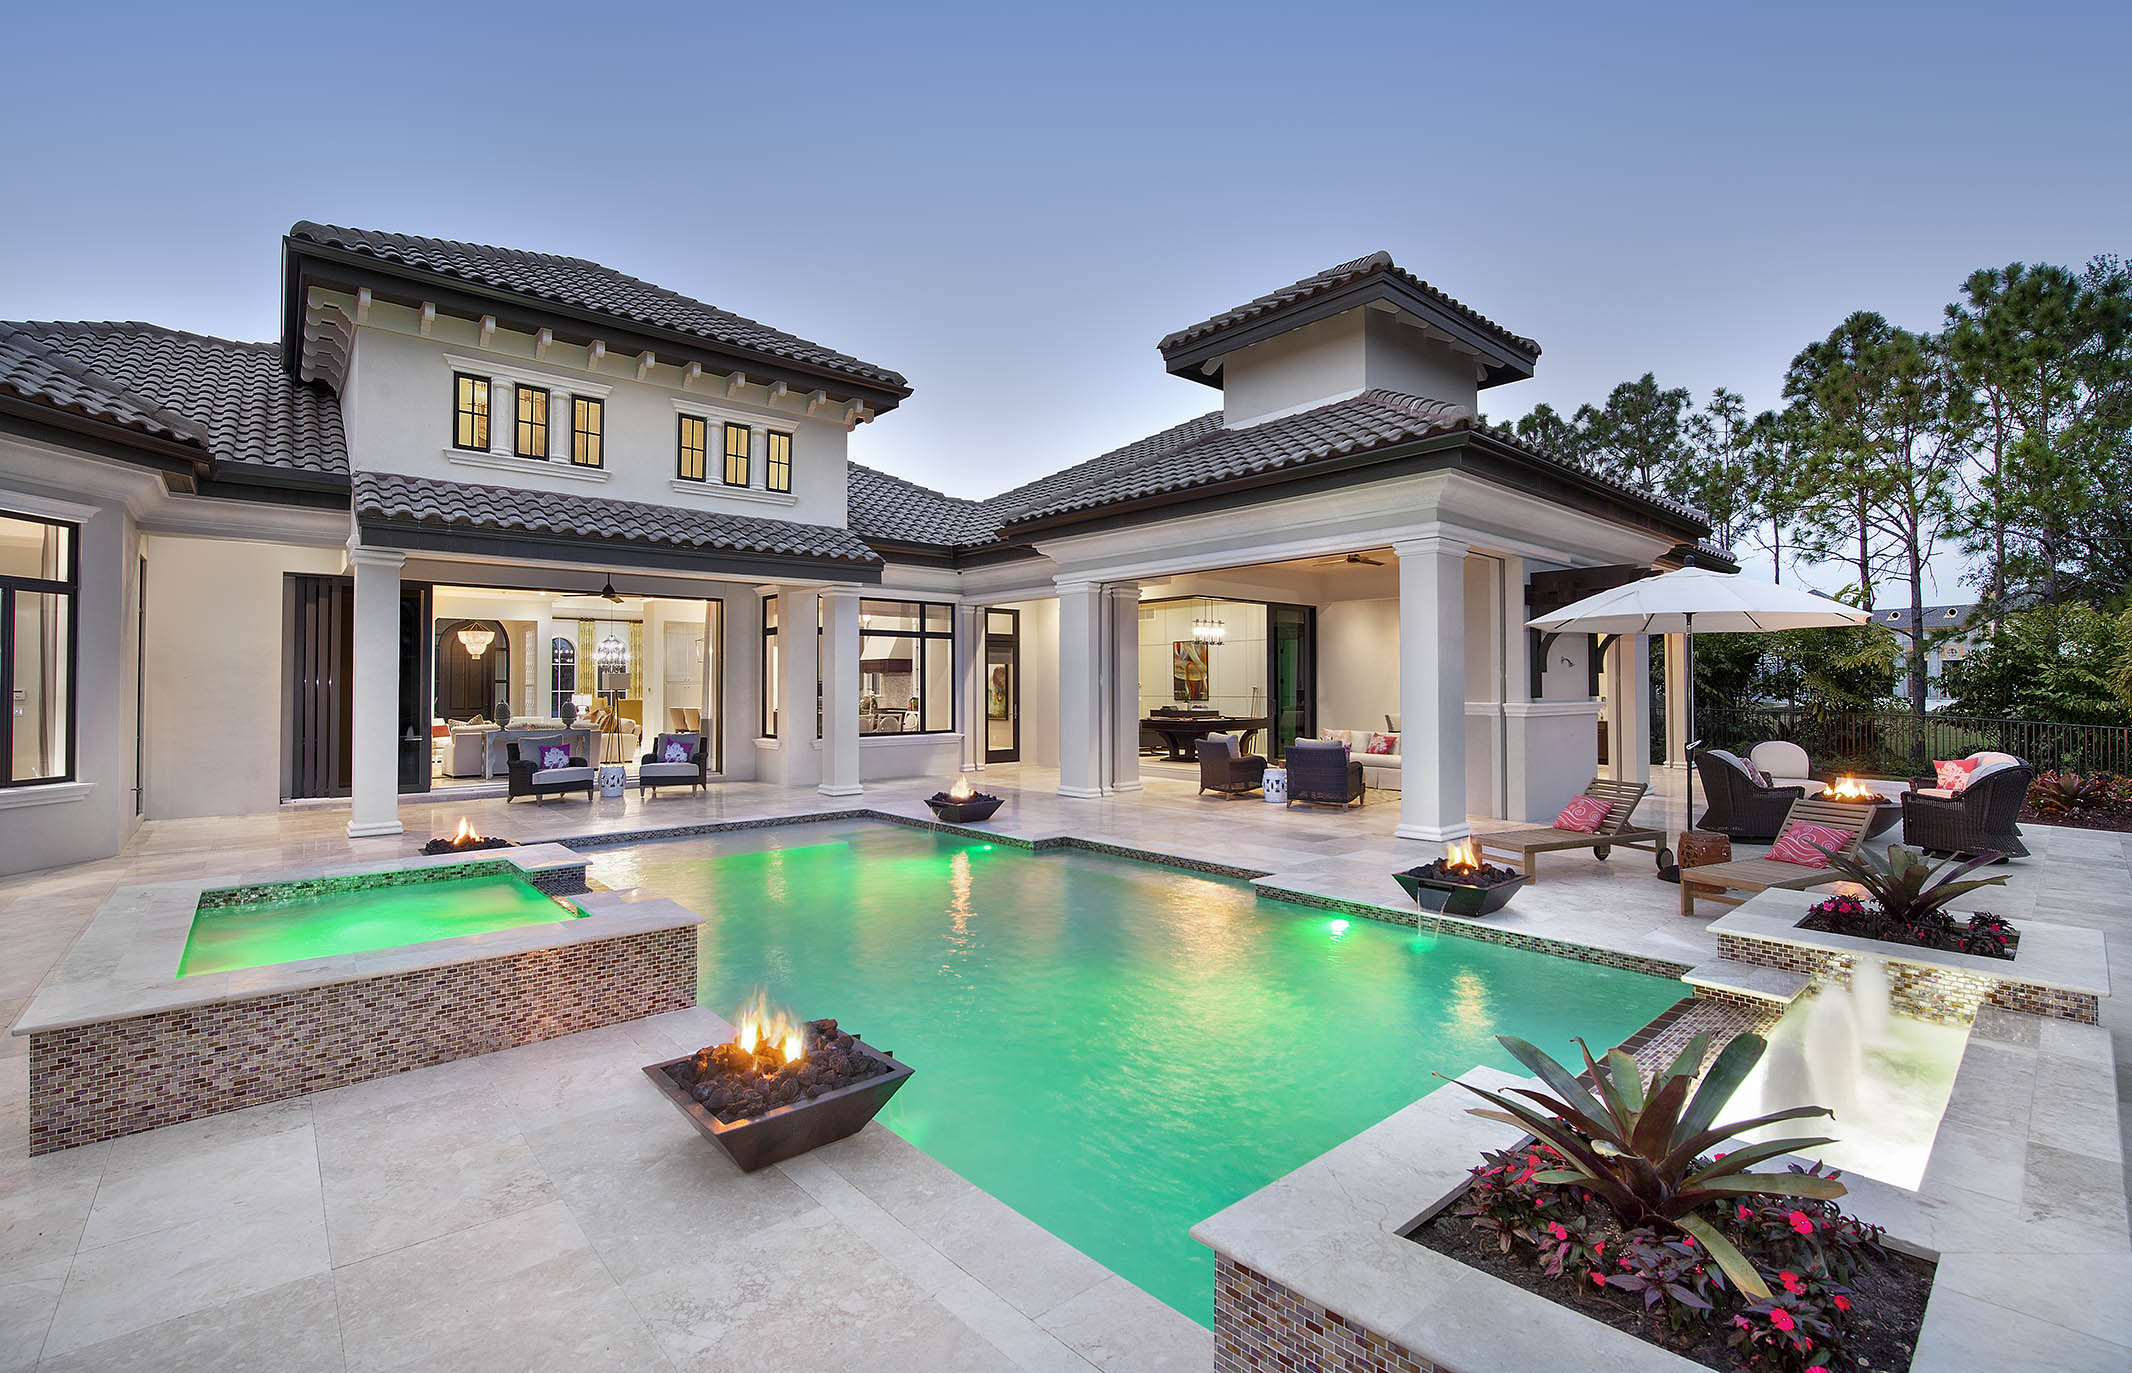 Naples architect designs new golf course home Exterior home design ideas 2015